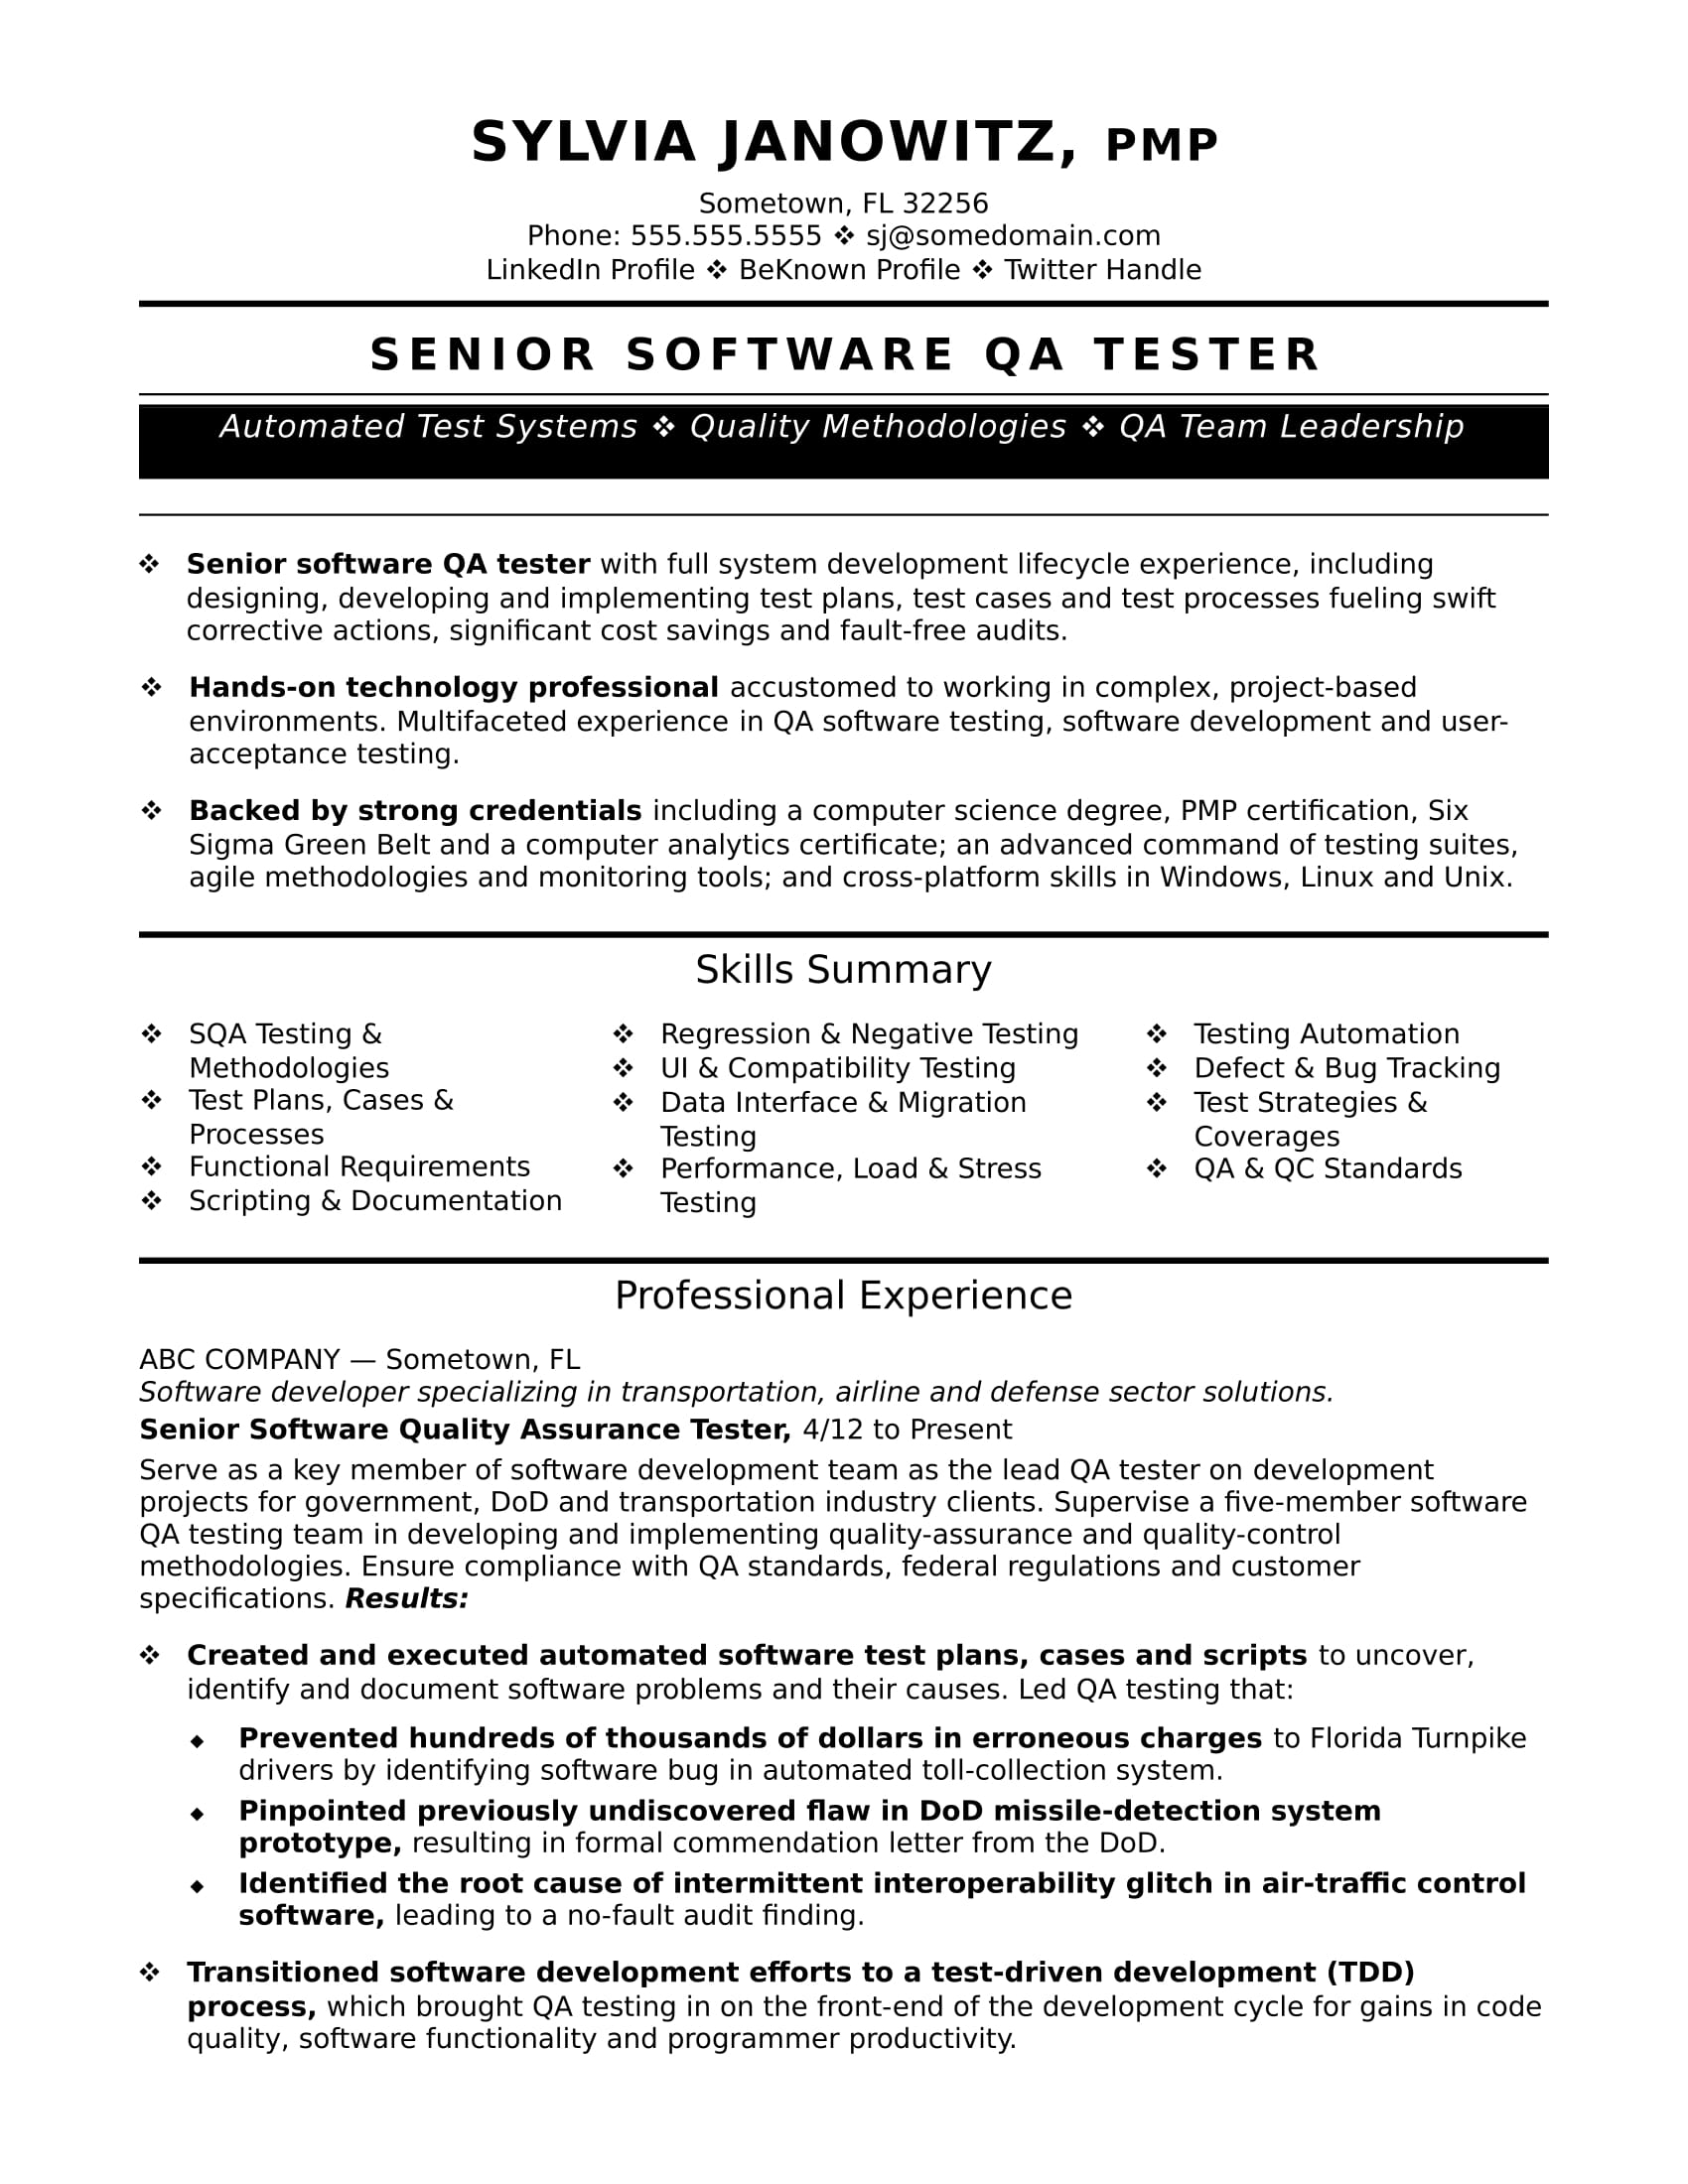 Charmant Experienced QA Software Tester Resume Sample